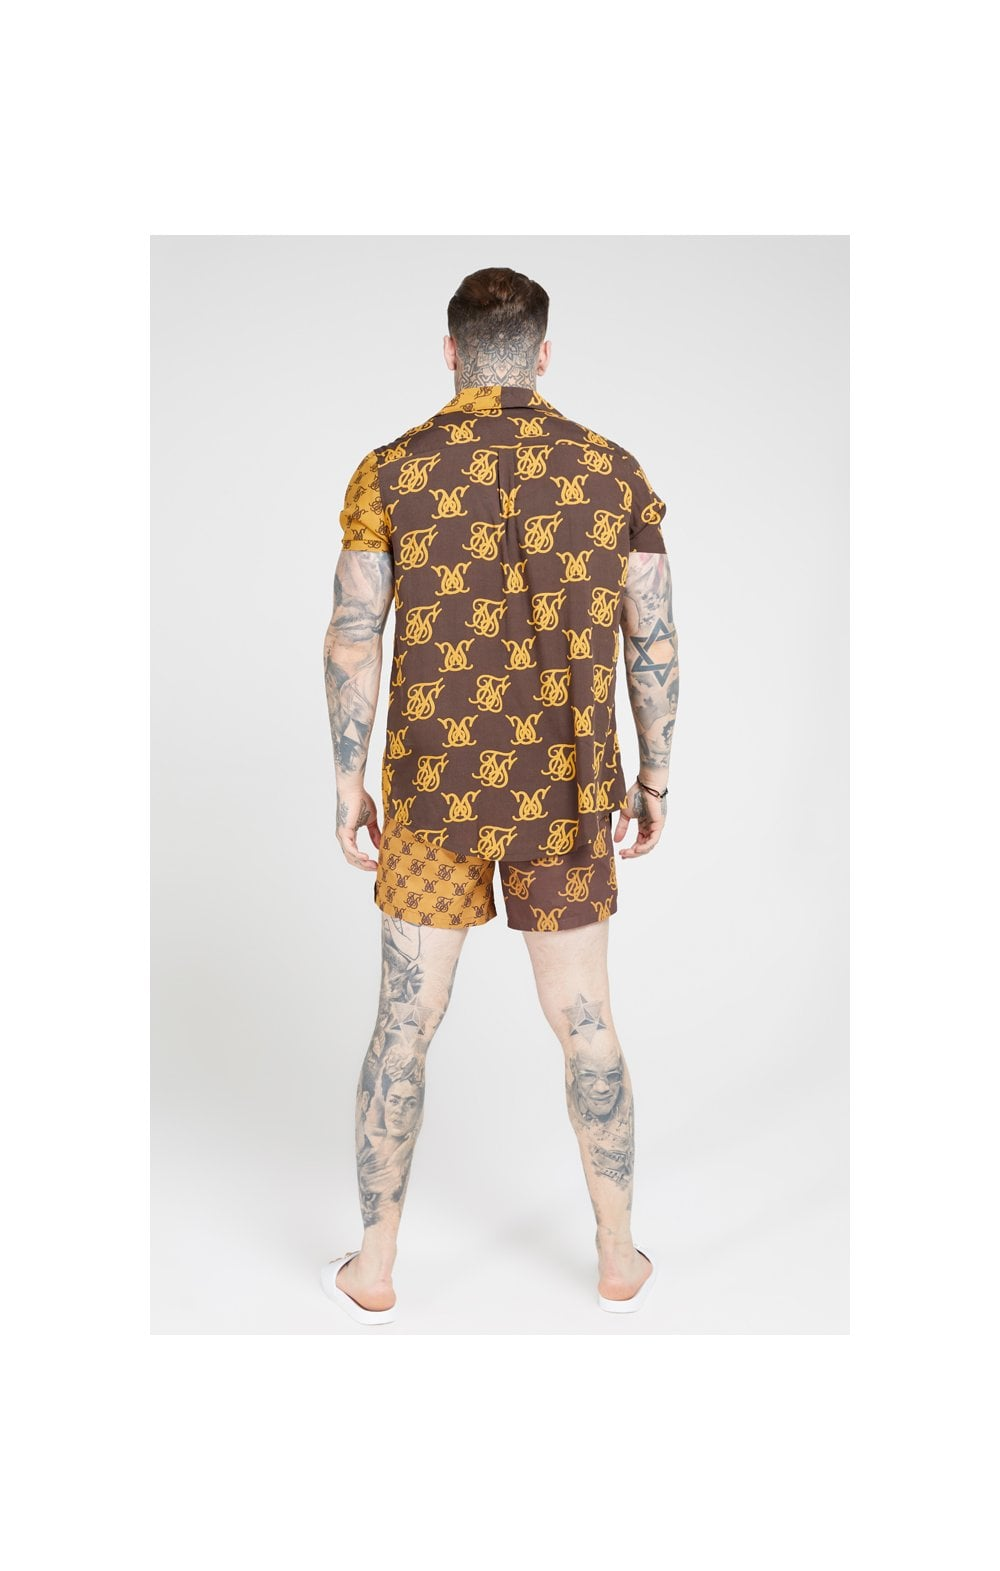 Load image into Gallery viewer, SikSilk S/S Resort Shirt – Tan & Brown (4)